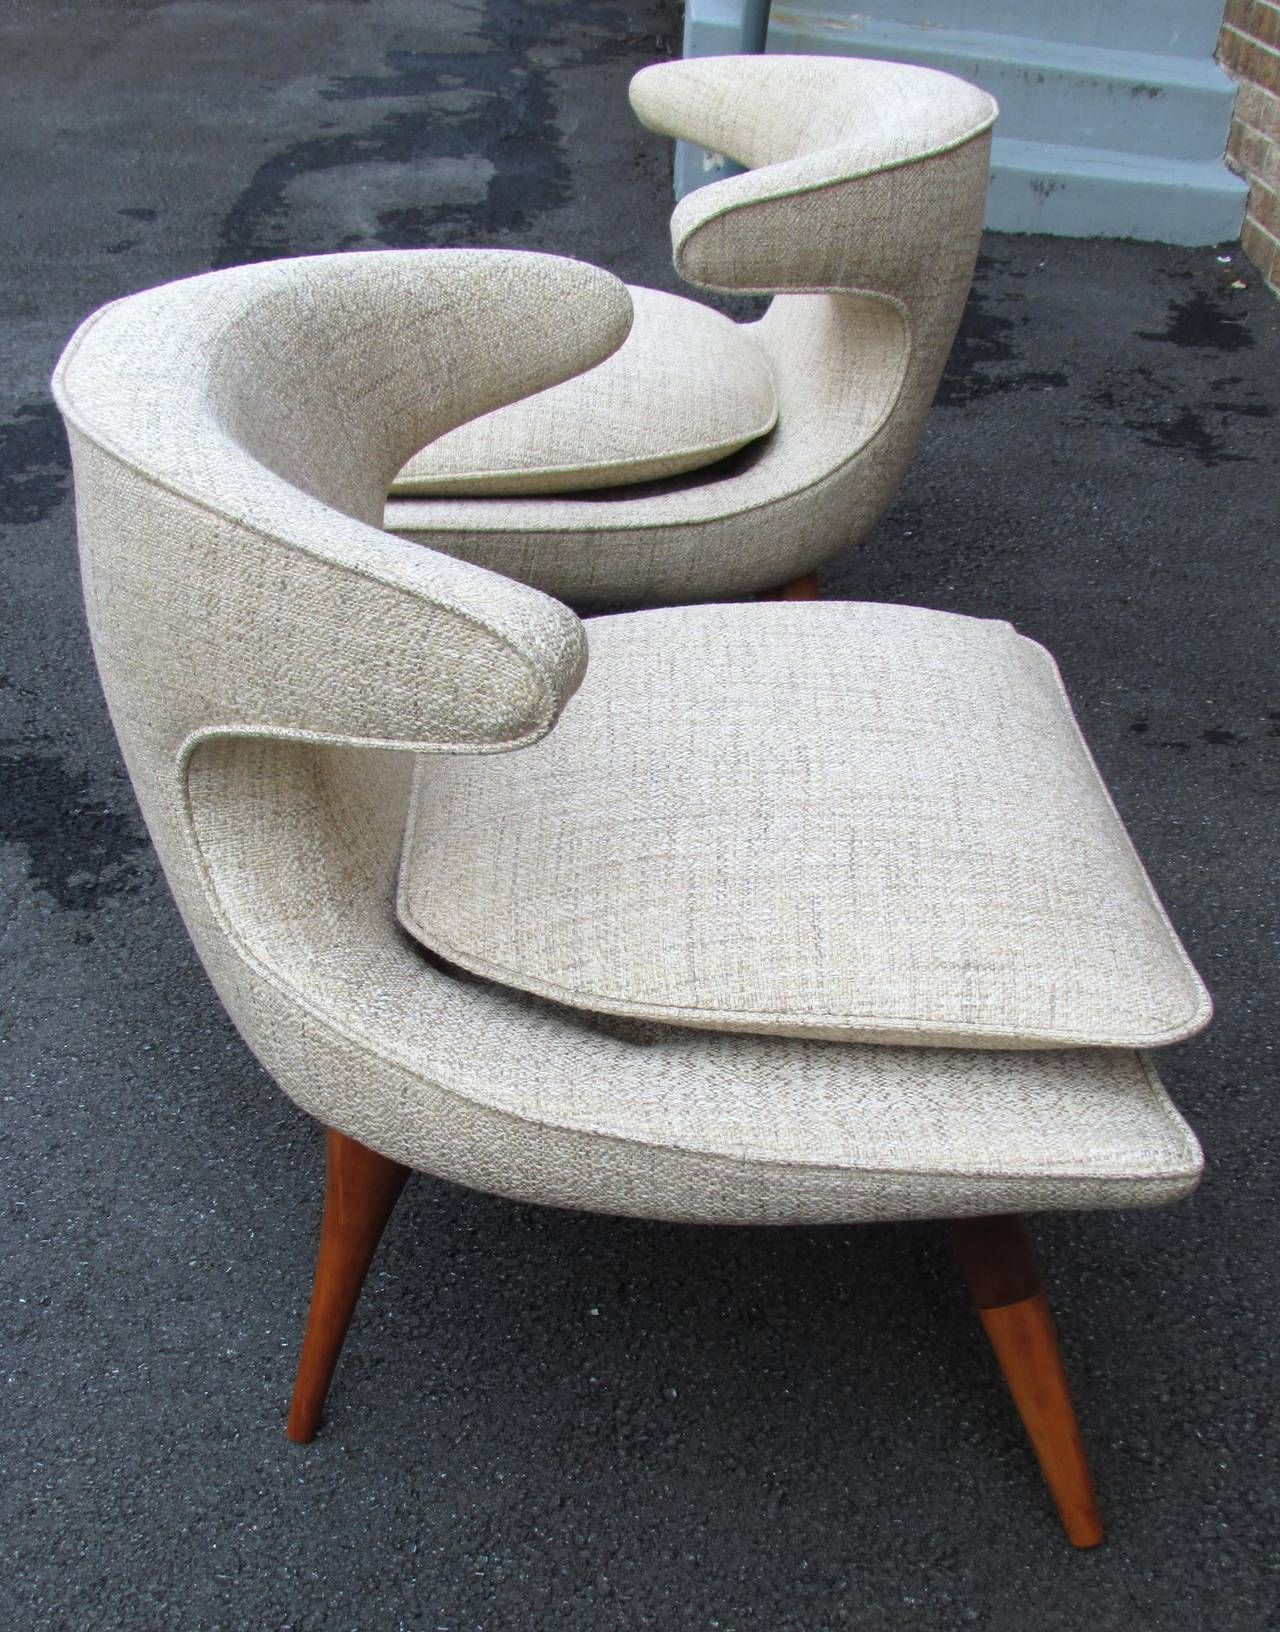 Möbel Modern Design Pair Of Karpen Horn Chairs Sit On Schöne Möbel Möbeldesign Möbel